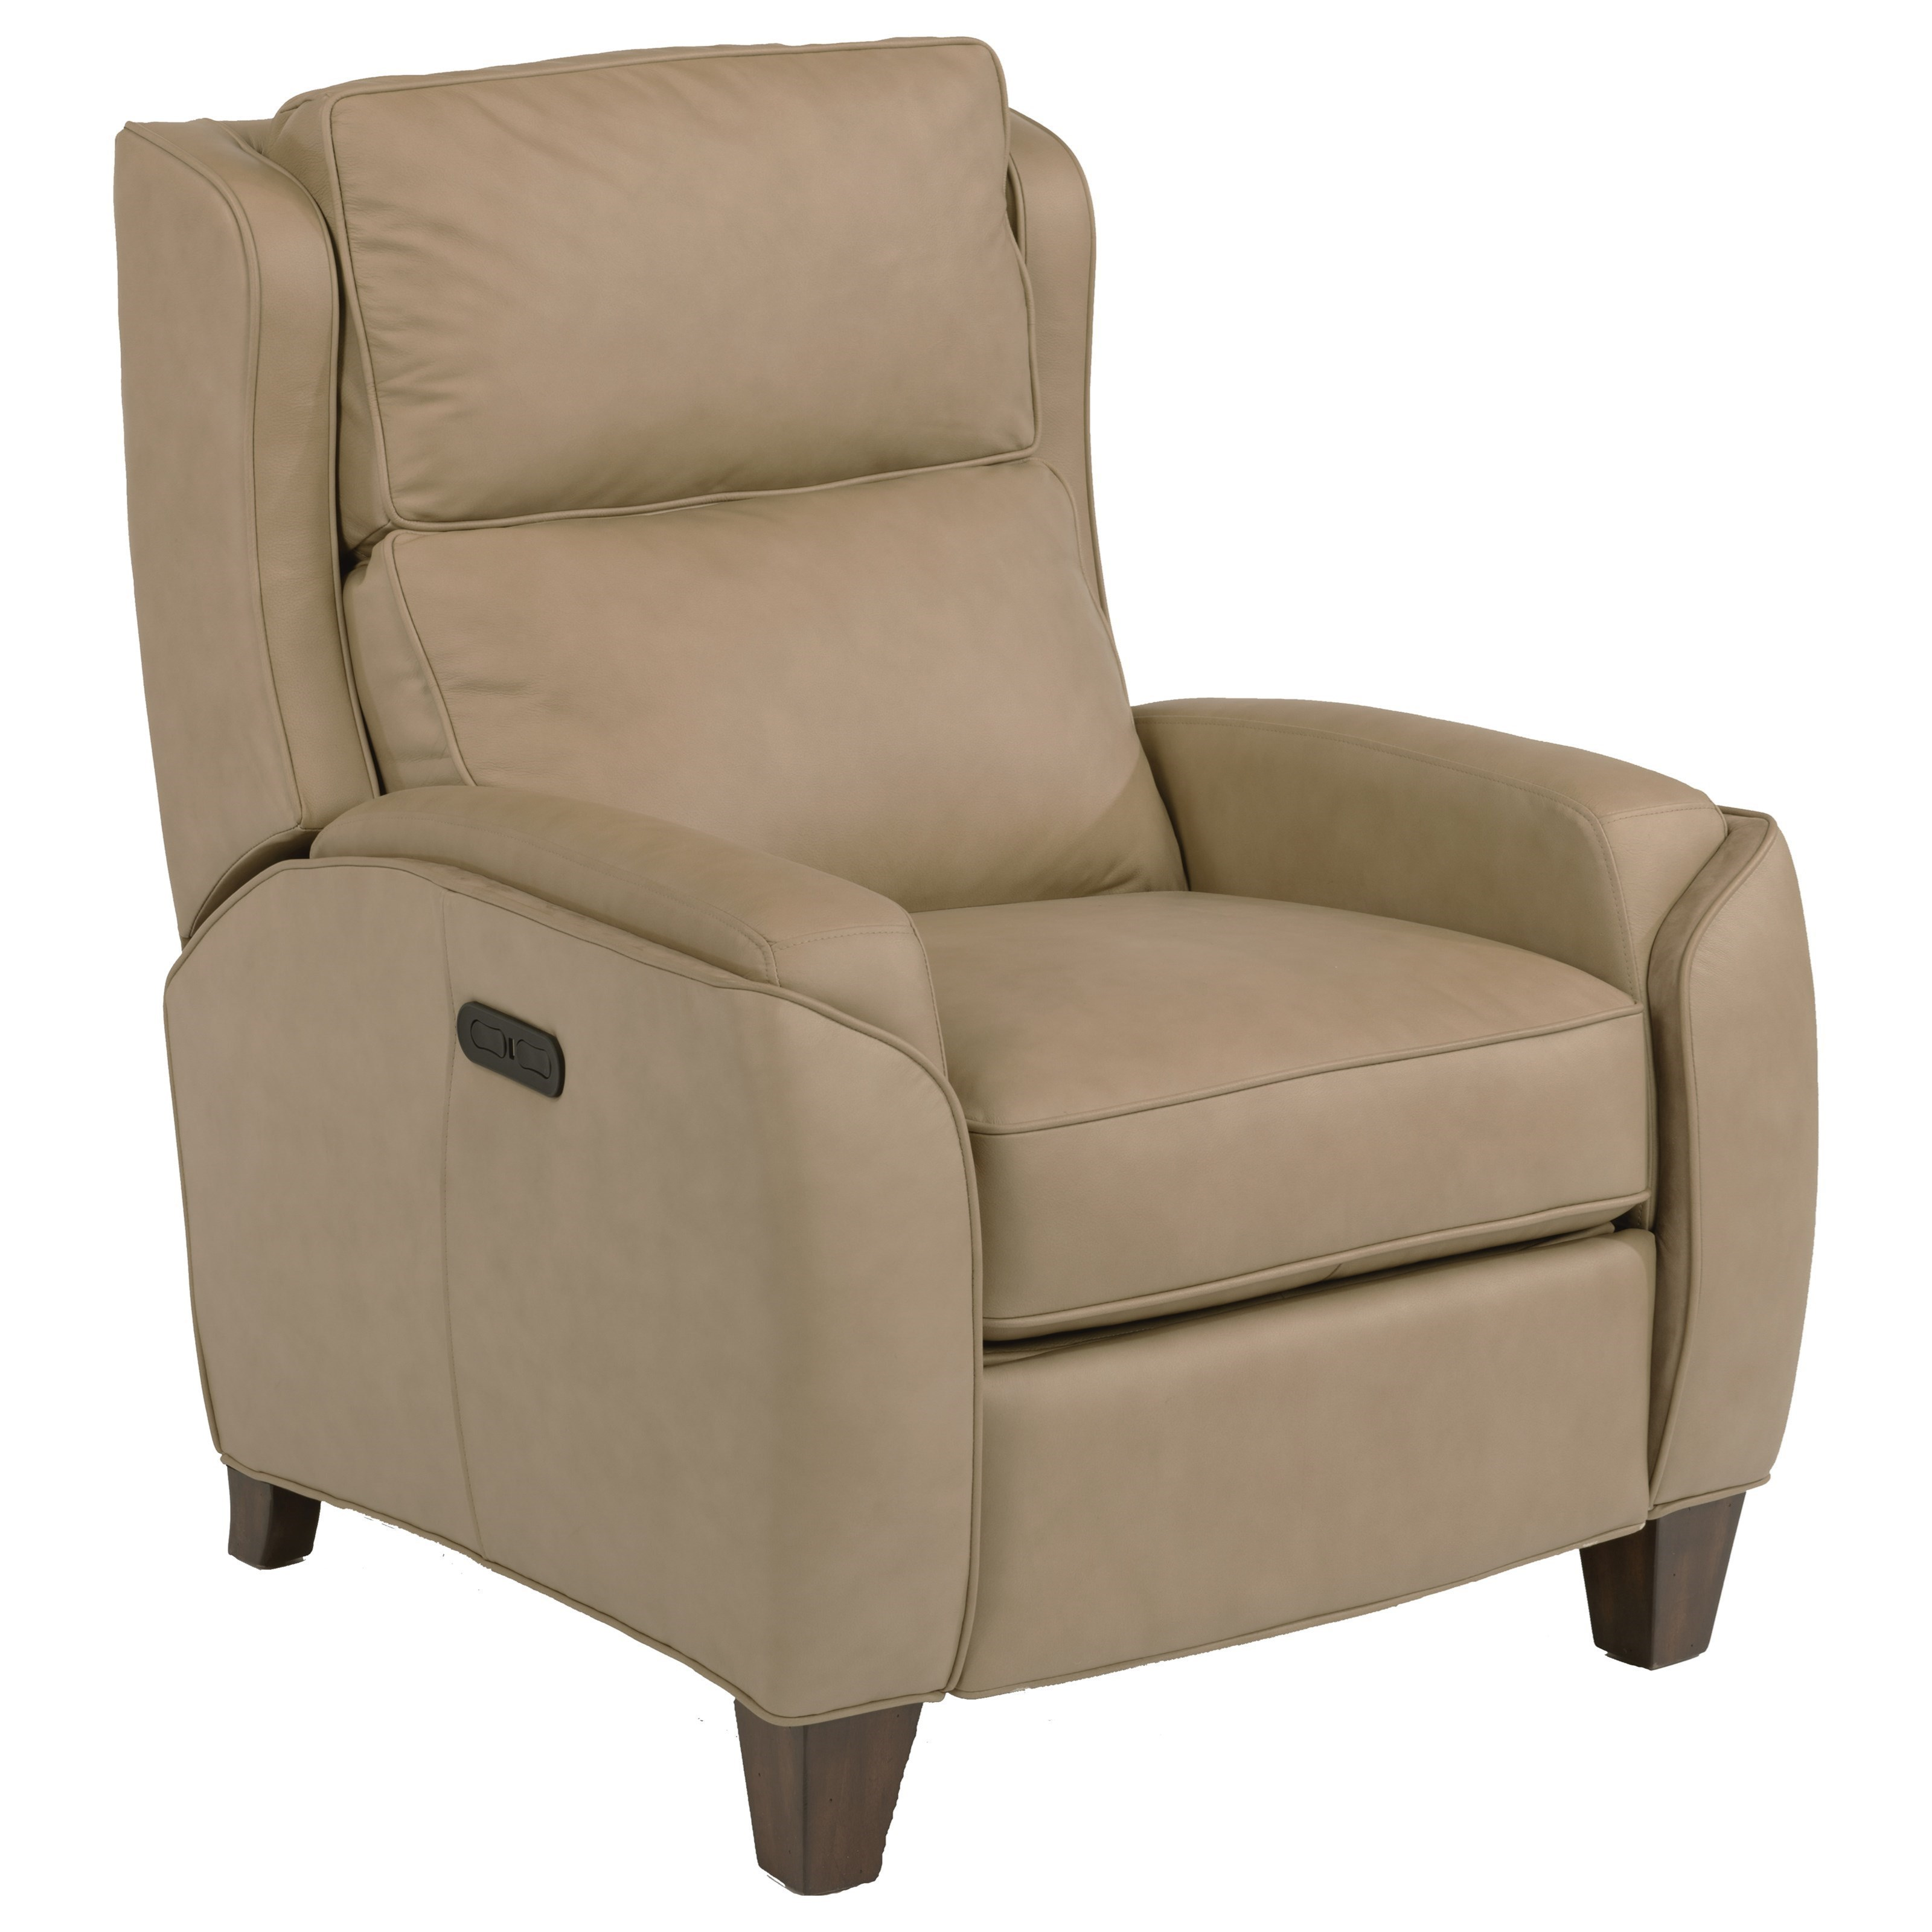 Flexsteel Latitudes-Rose Power High Leg Recliner with Power Tilt